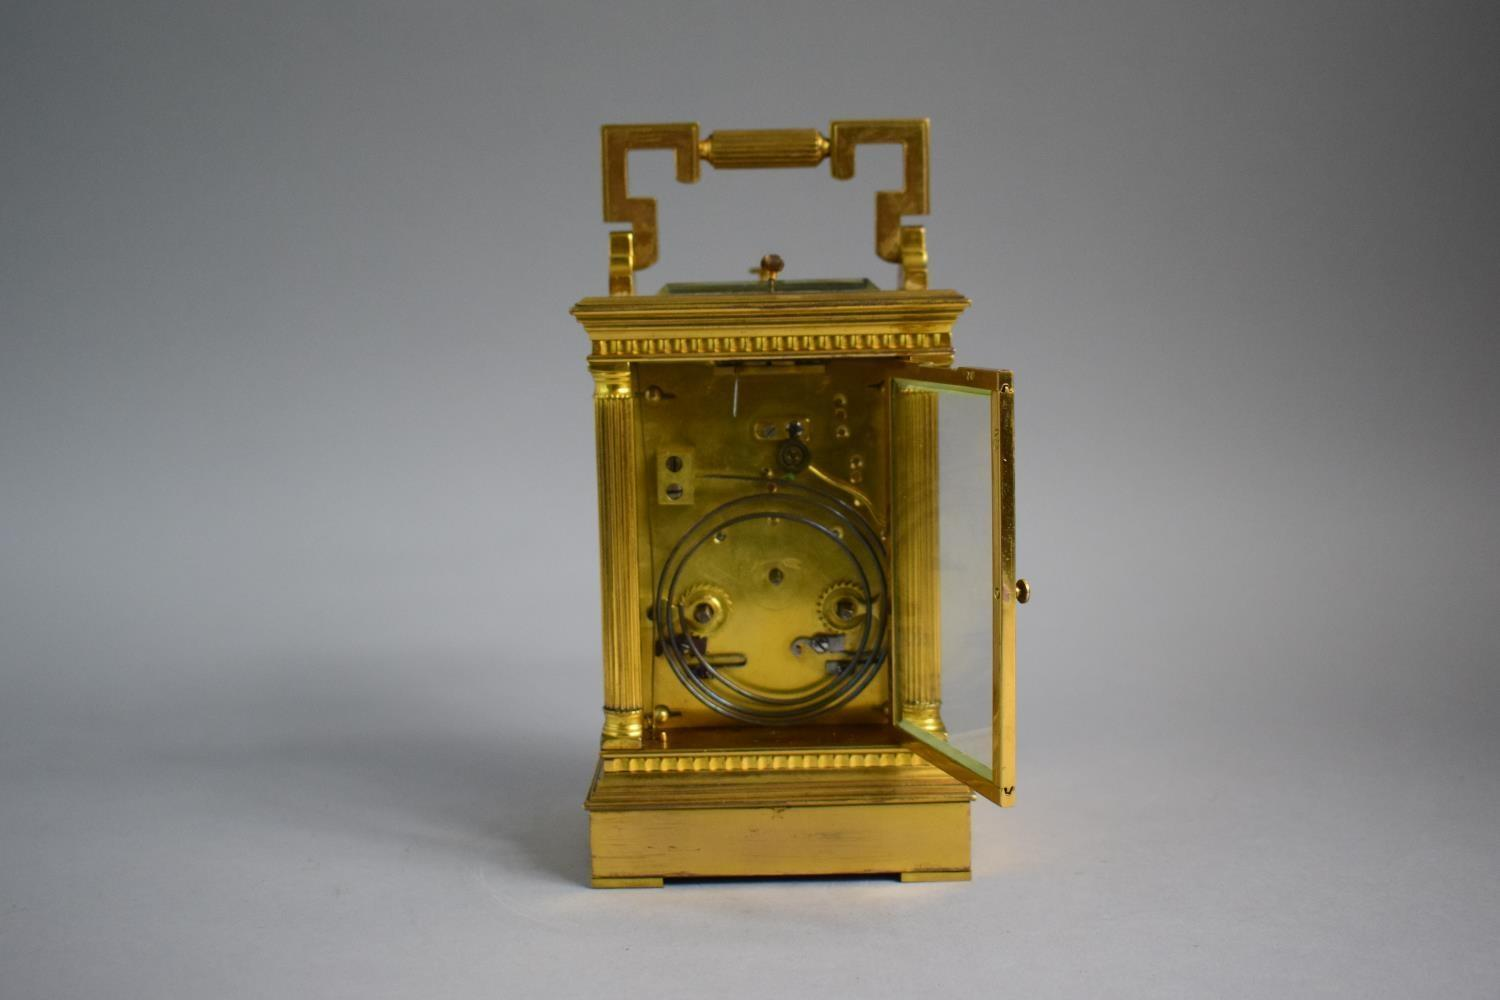 Lot 346 - A French Late 19th Century Gilt Brass Cased Musical Carriage Clock with Repeater Movement. Reeded